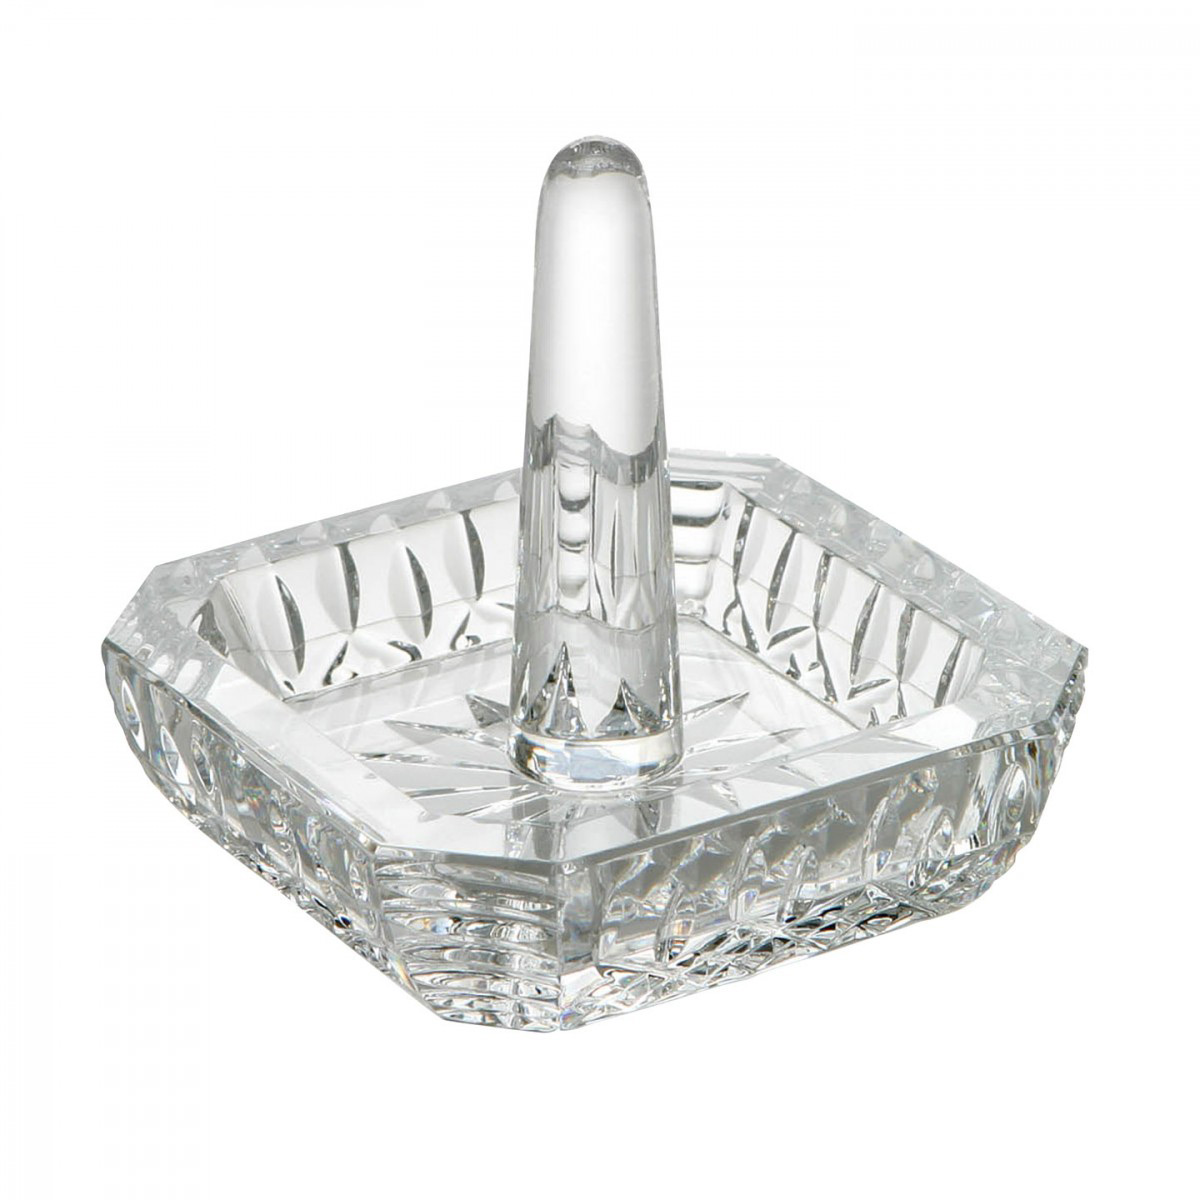 Square Decorative Crystal Ring Holder